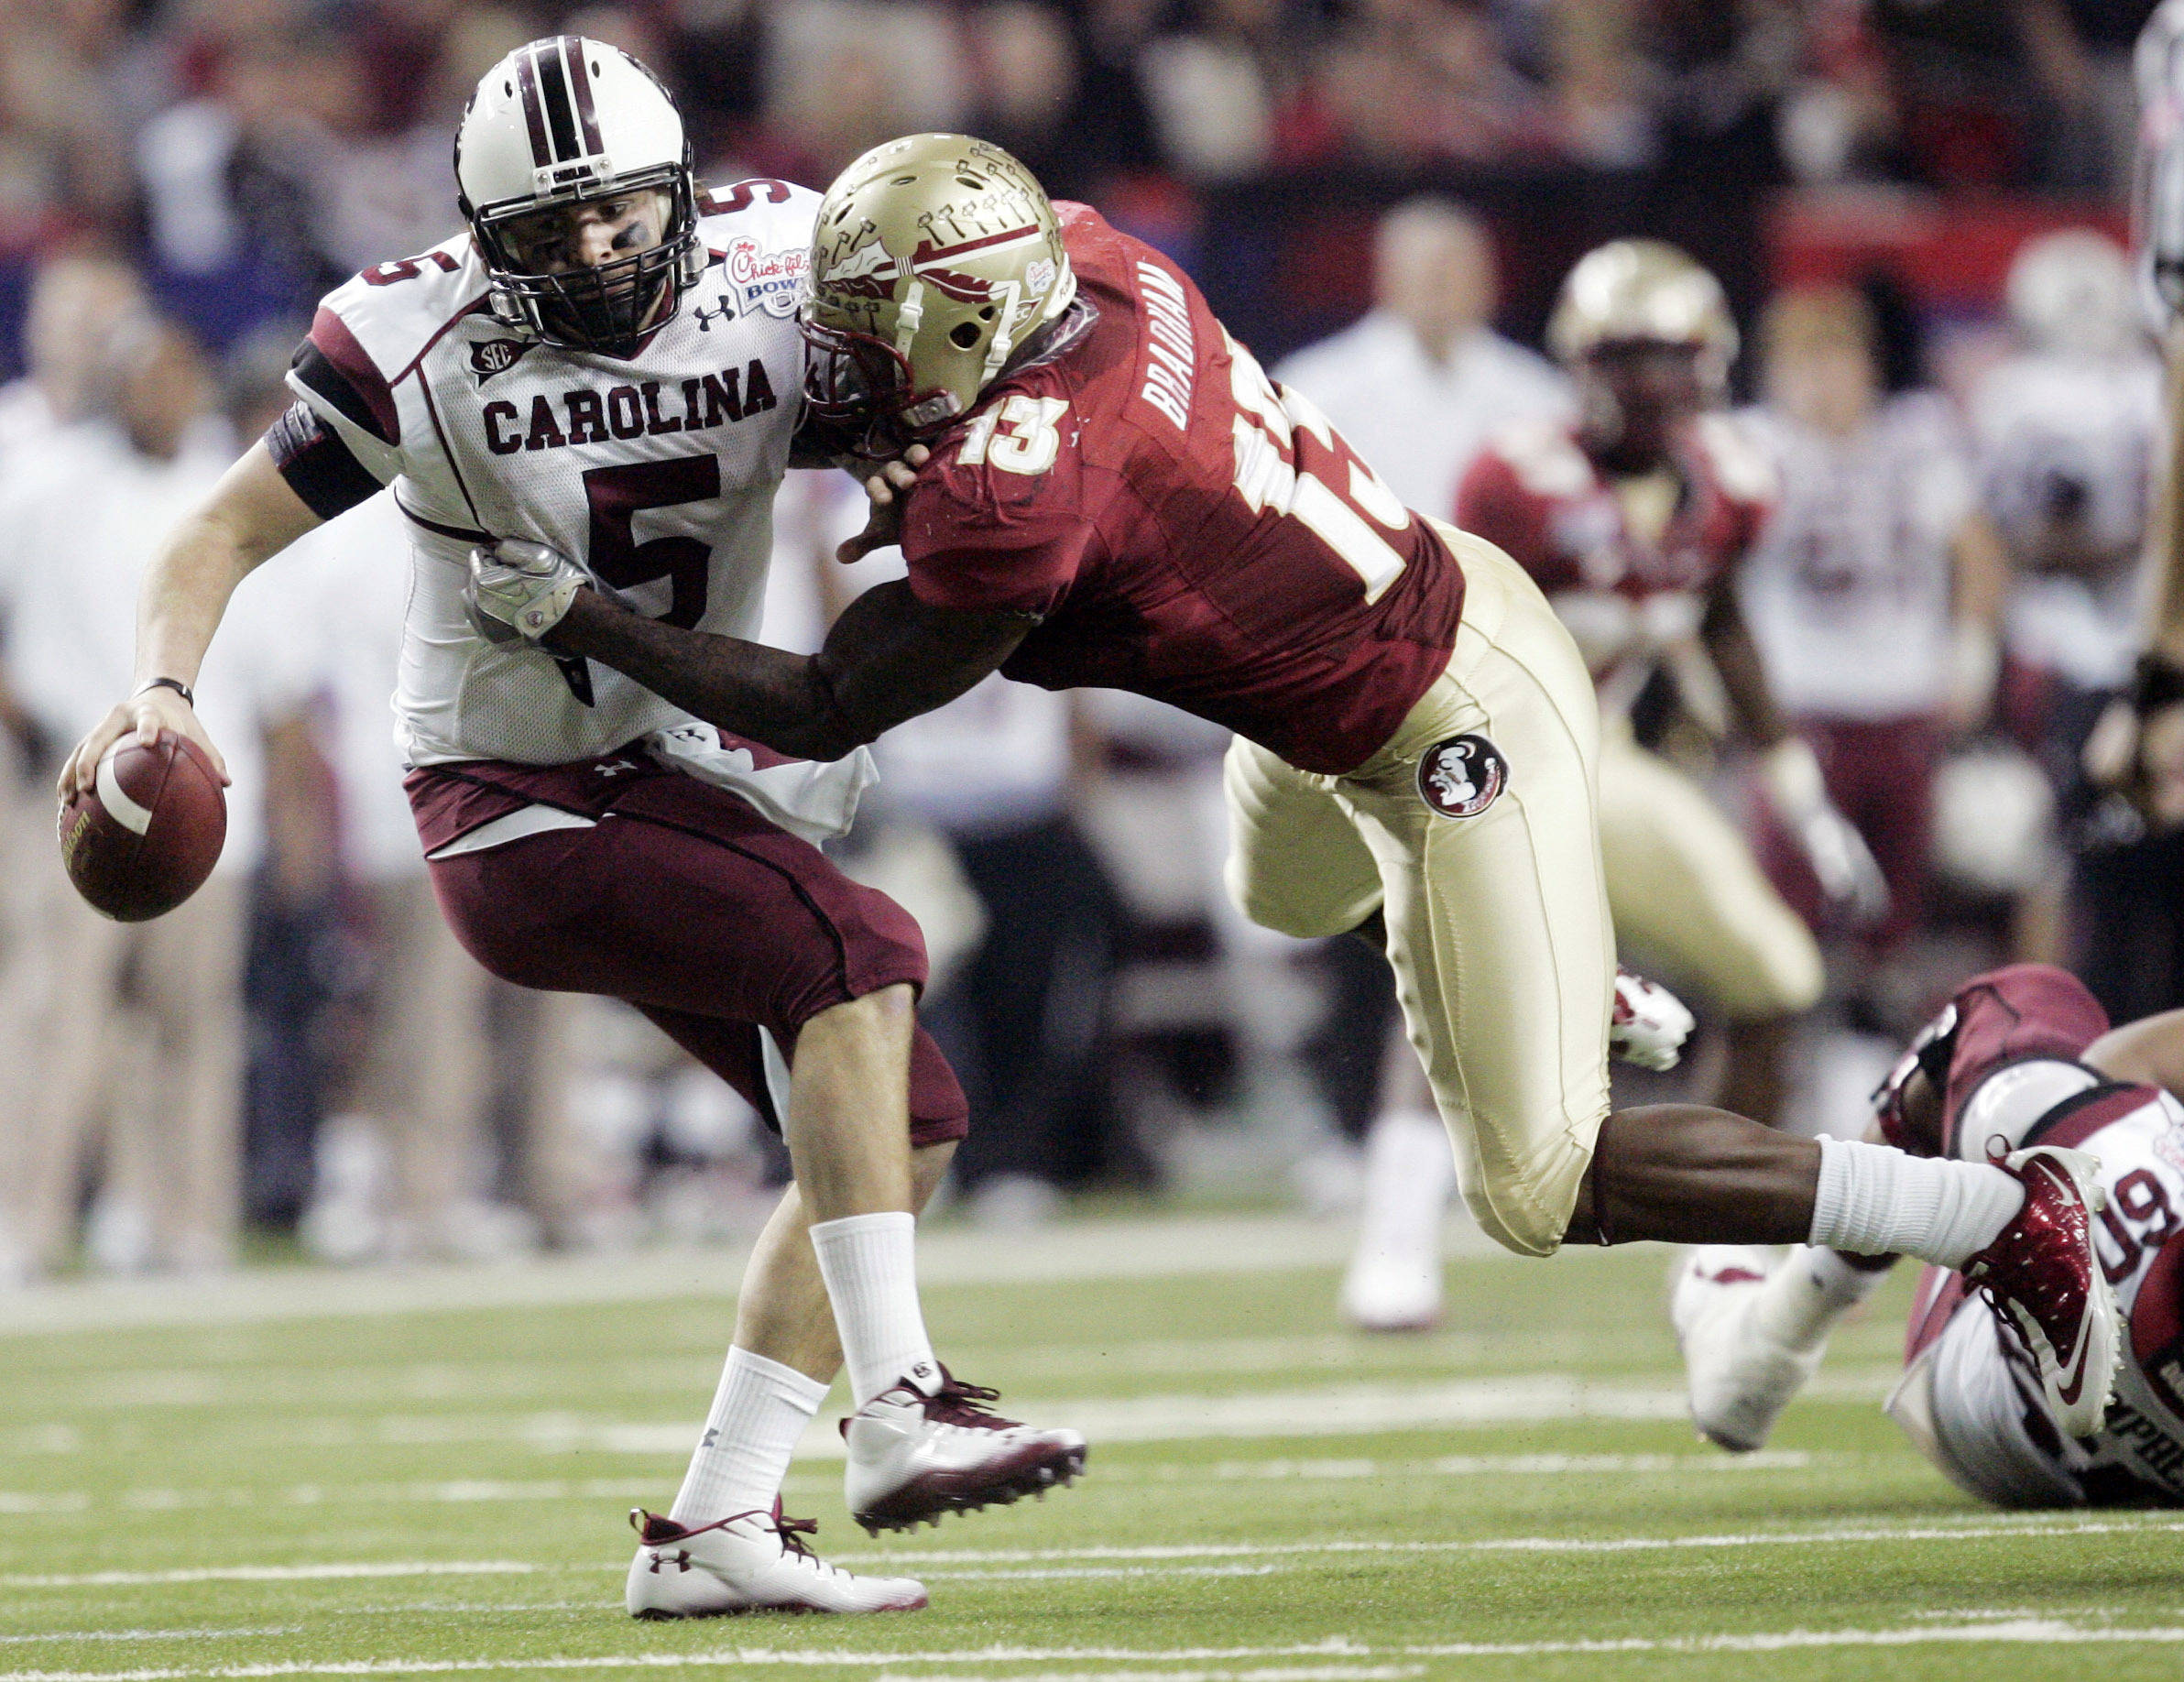 South Carolina quarterback Stephen Garcia (5) is sacked by Florida State linebacker Nigel Bradham (13) in the second quarter of the Chick-fil-A Bowl NCAA college football game on Friday, Dec. 31, 2010, in Atlanta. (AP Photo/John Amis)